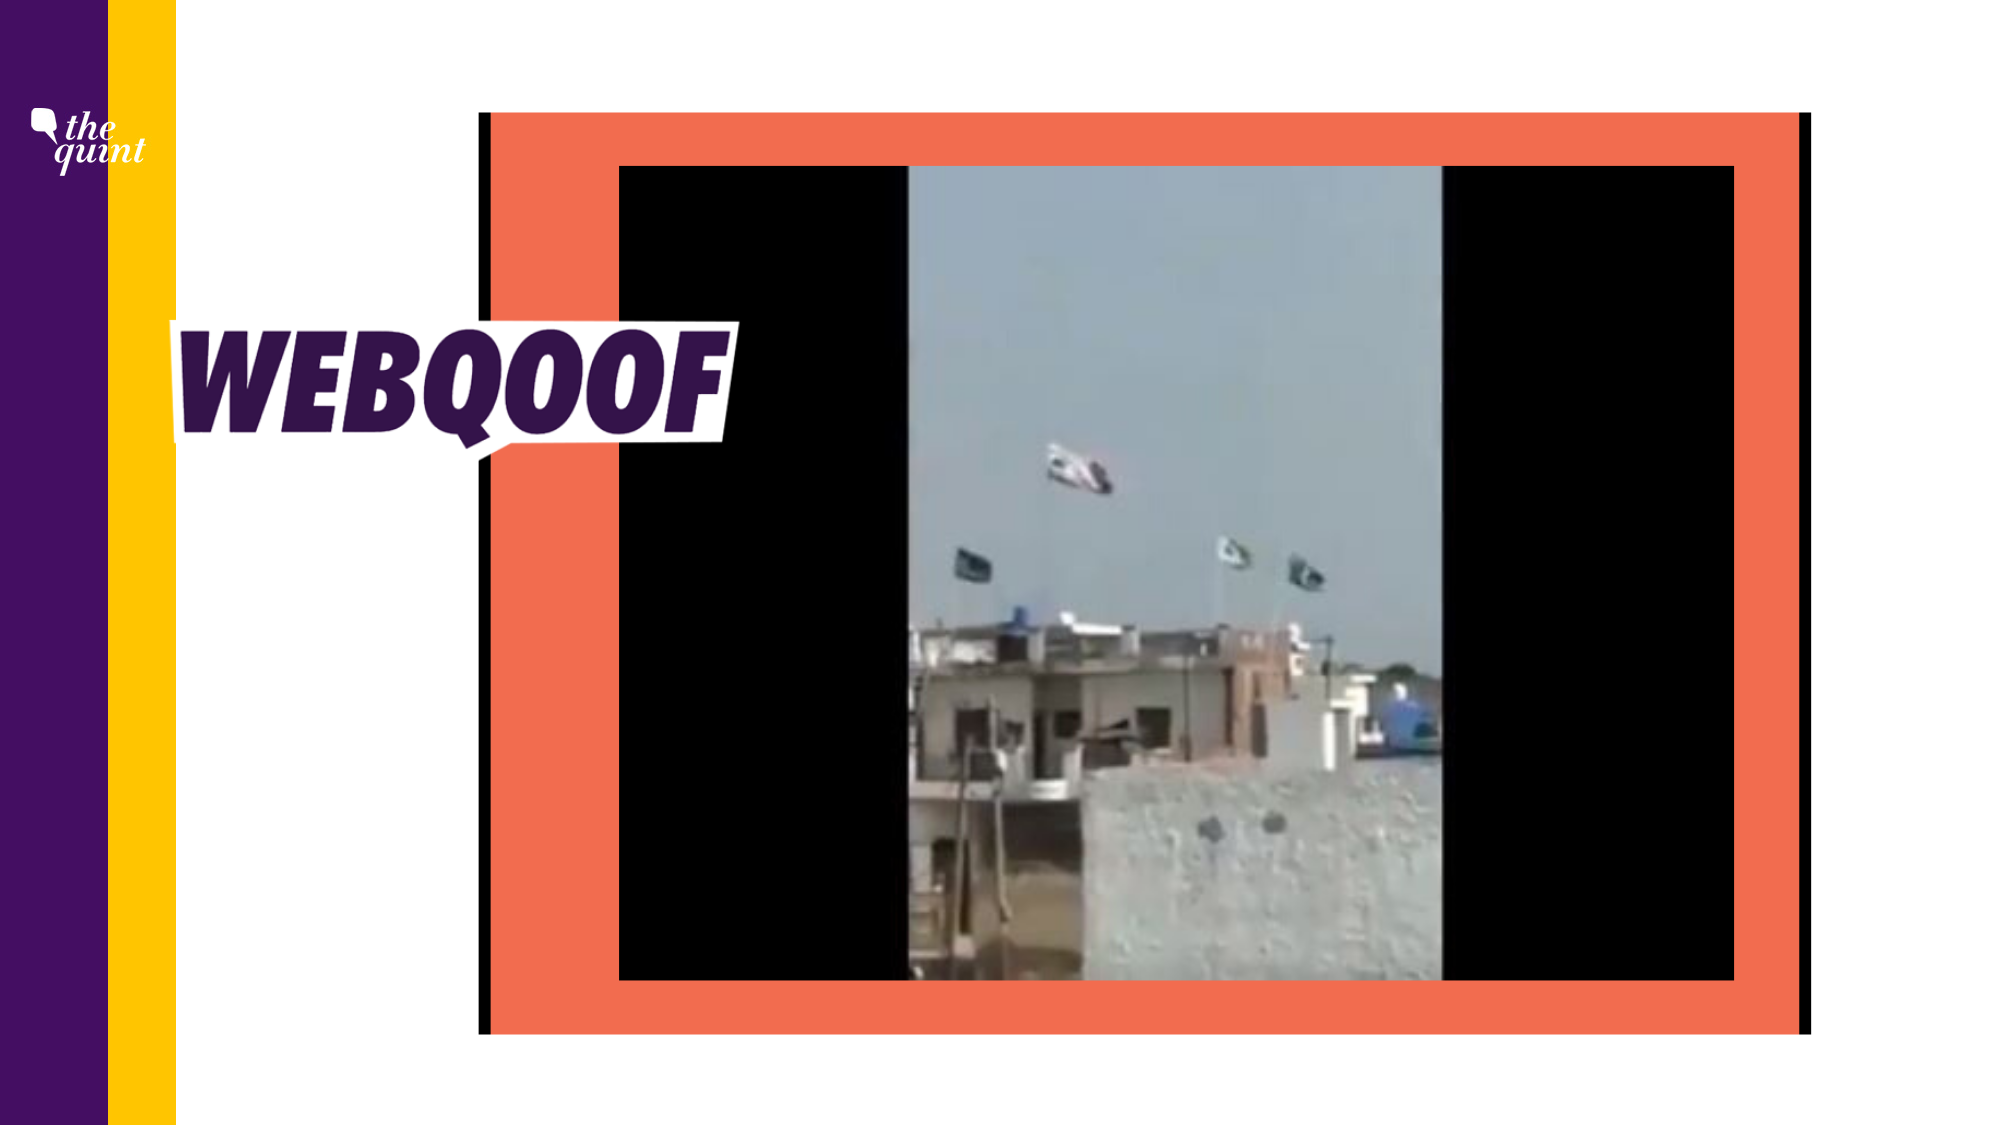 Islamic Flags in Jalandhar Passed Off as Pakistani Flags in Video